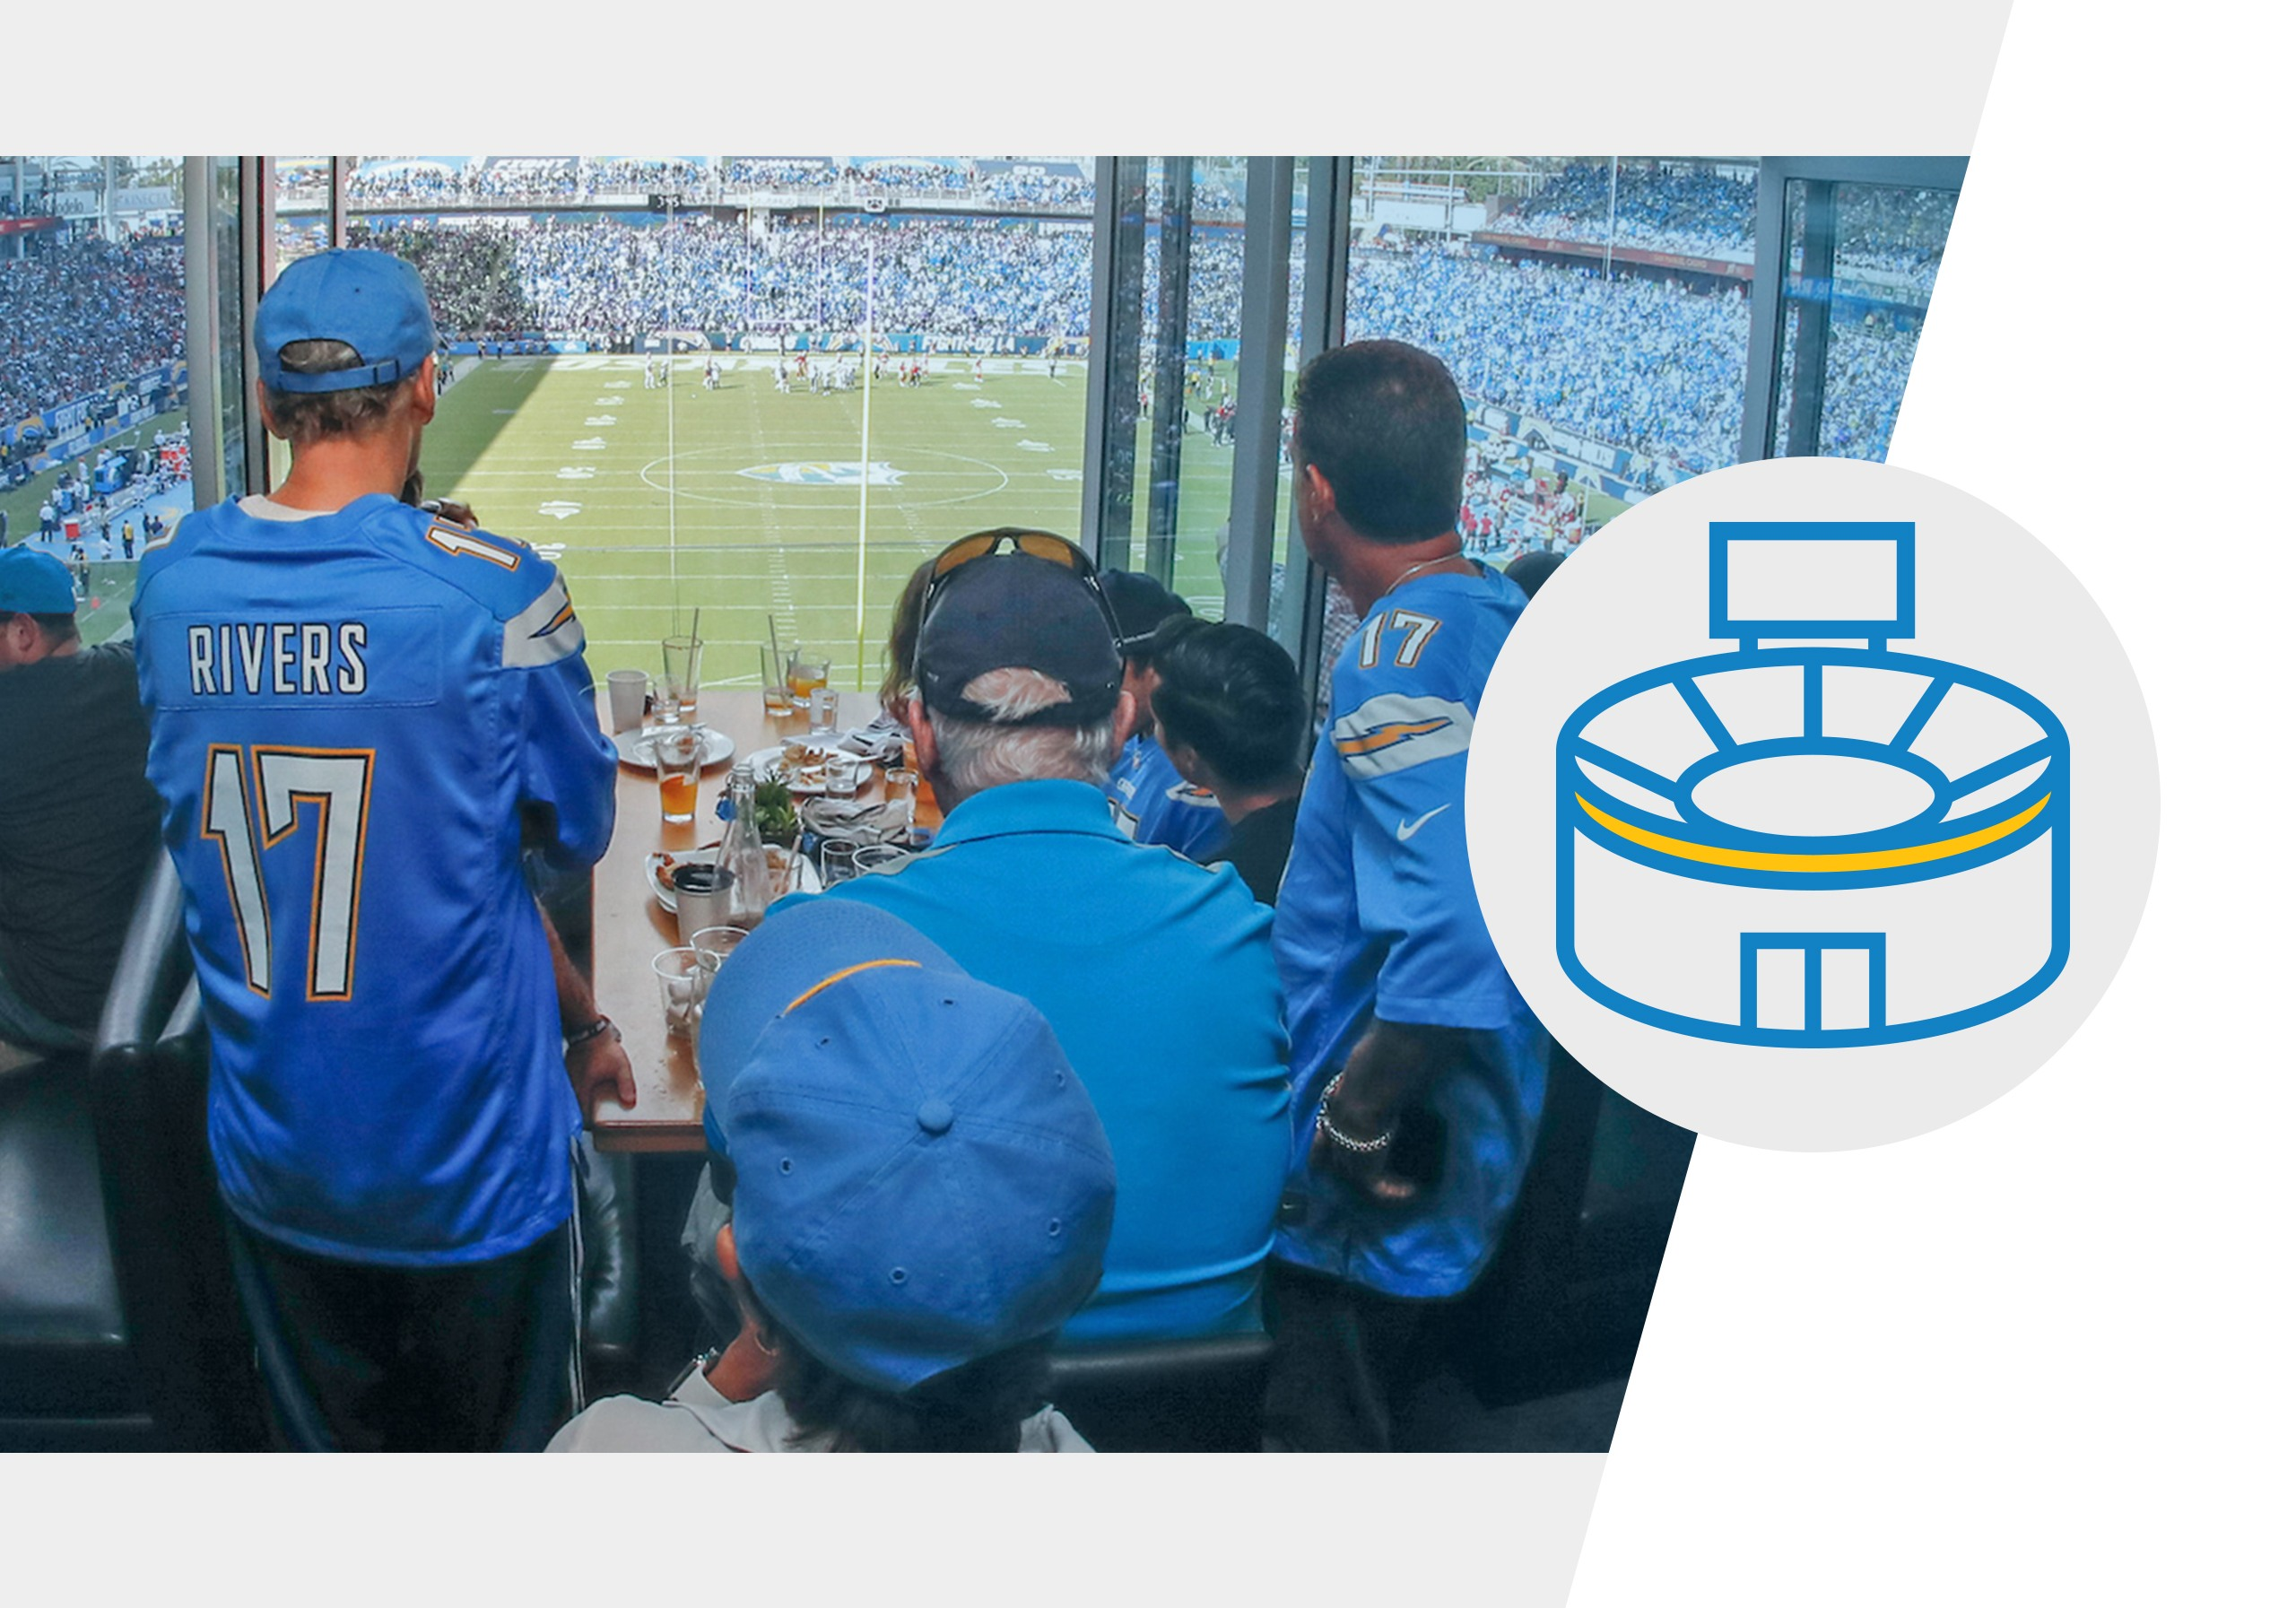 Los Angeles Chargers Premium Experiences | Los Angeles Chargers